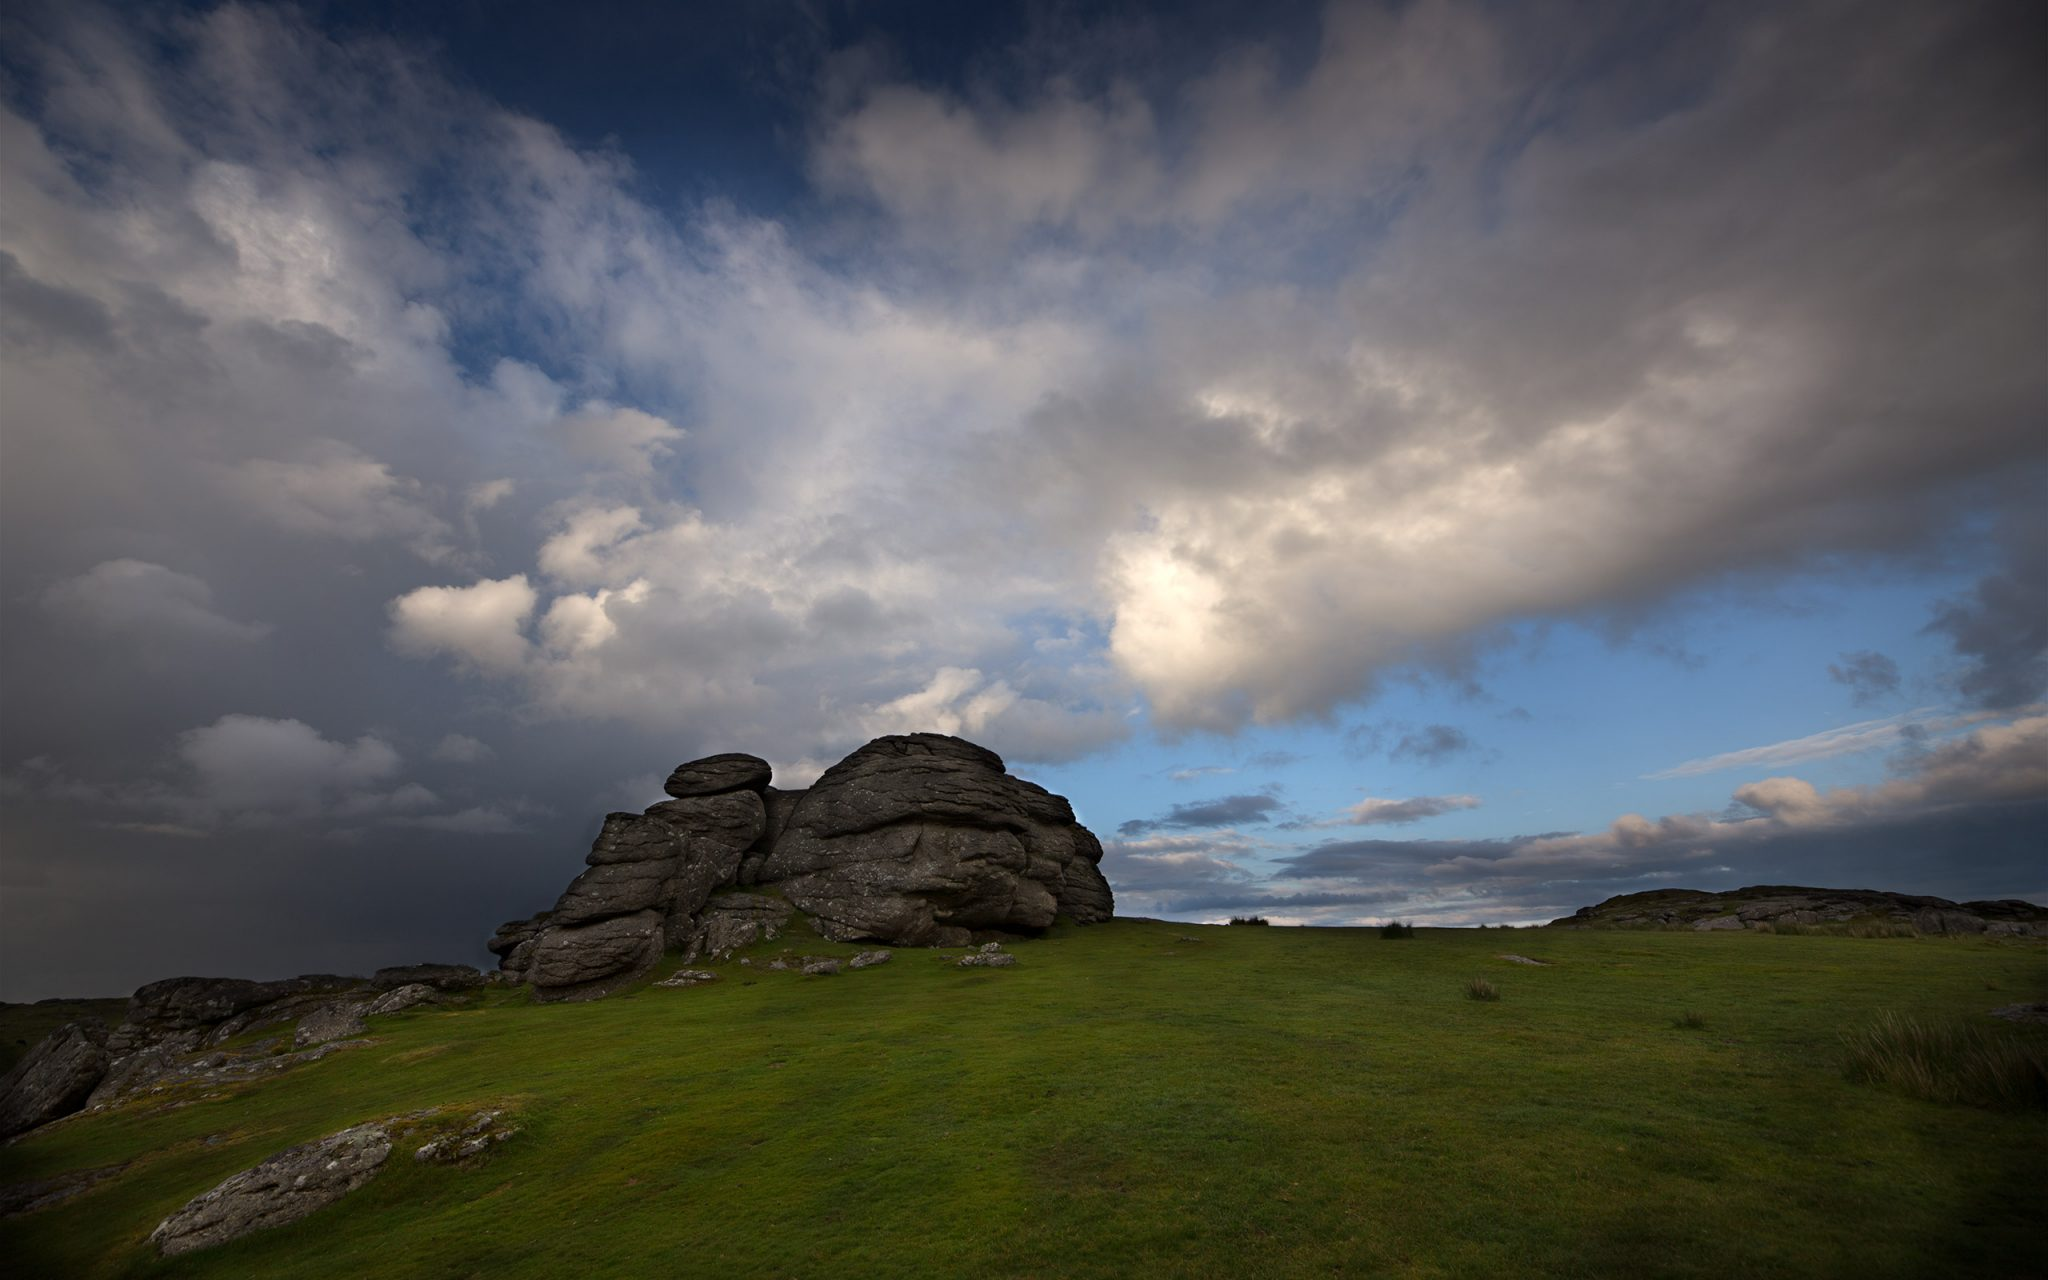 HDR photo on Dartmoor, Devon. Between Saddle Tor and Bone Hill rocks, looking west. Carey Marks photography